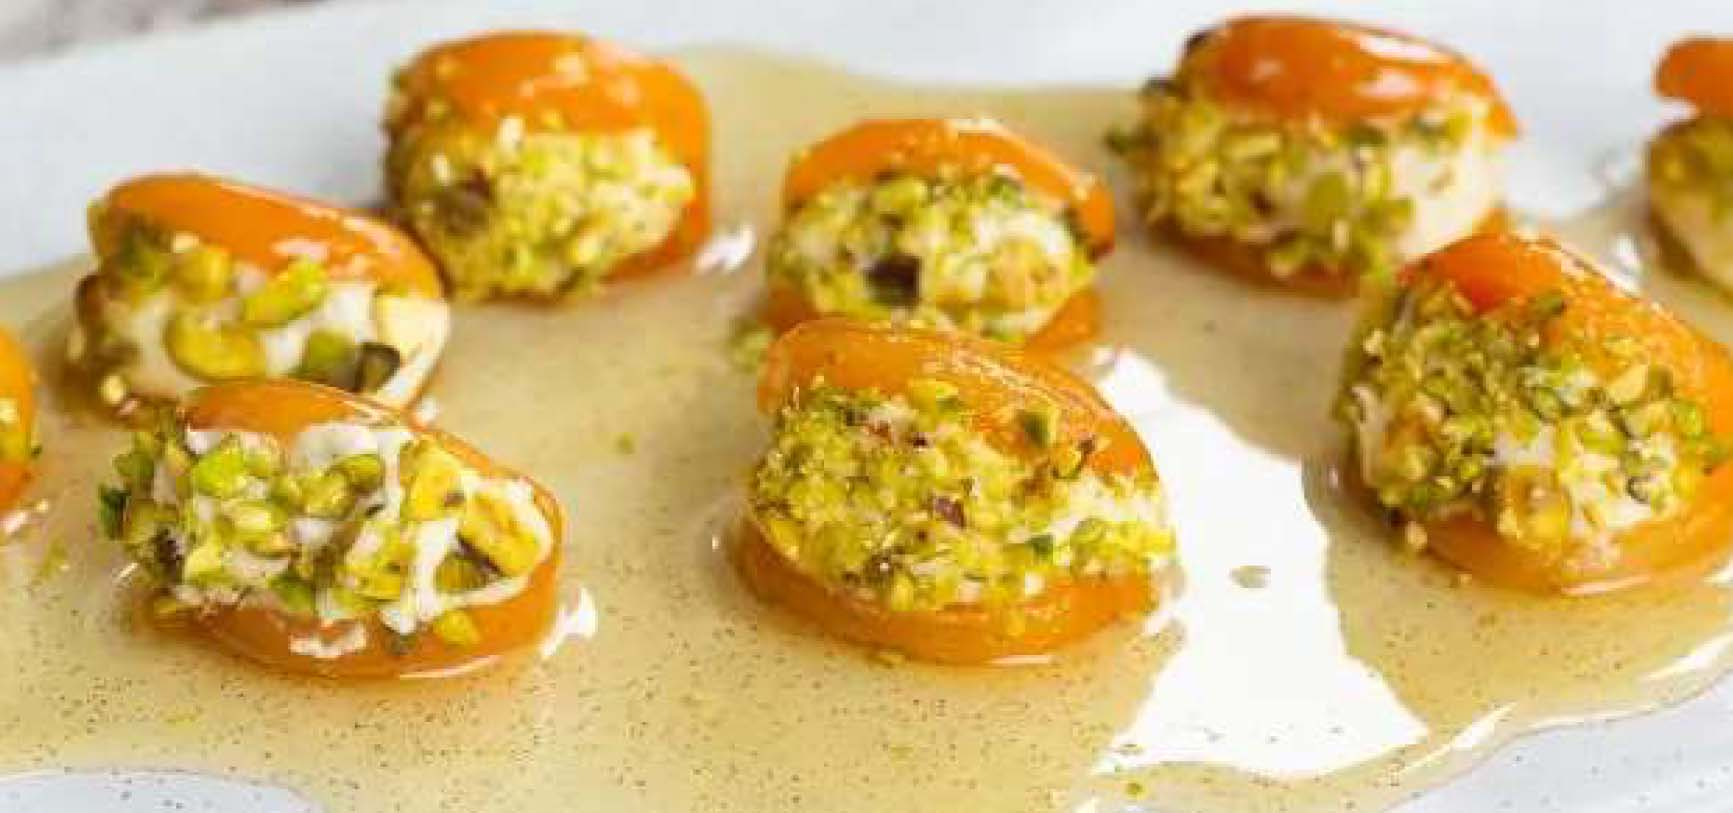 Apricots stuffed with cheese and pistachios, drizzled with honey on a platter.